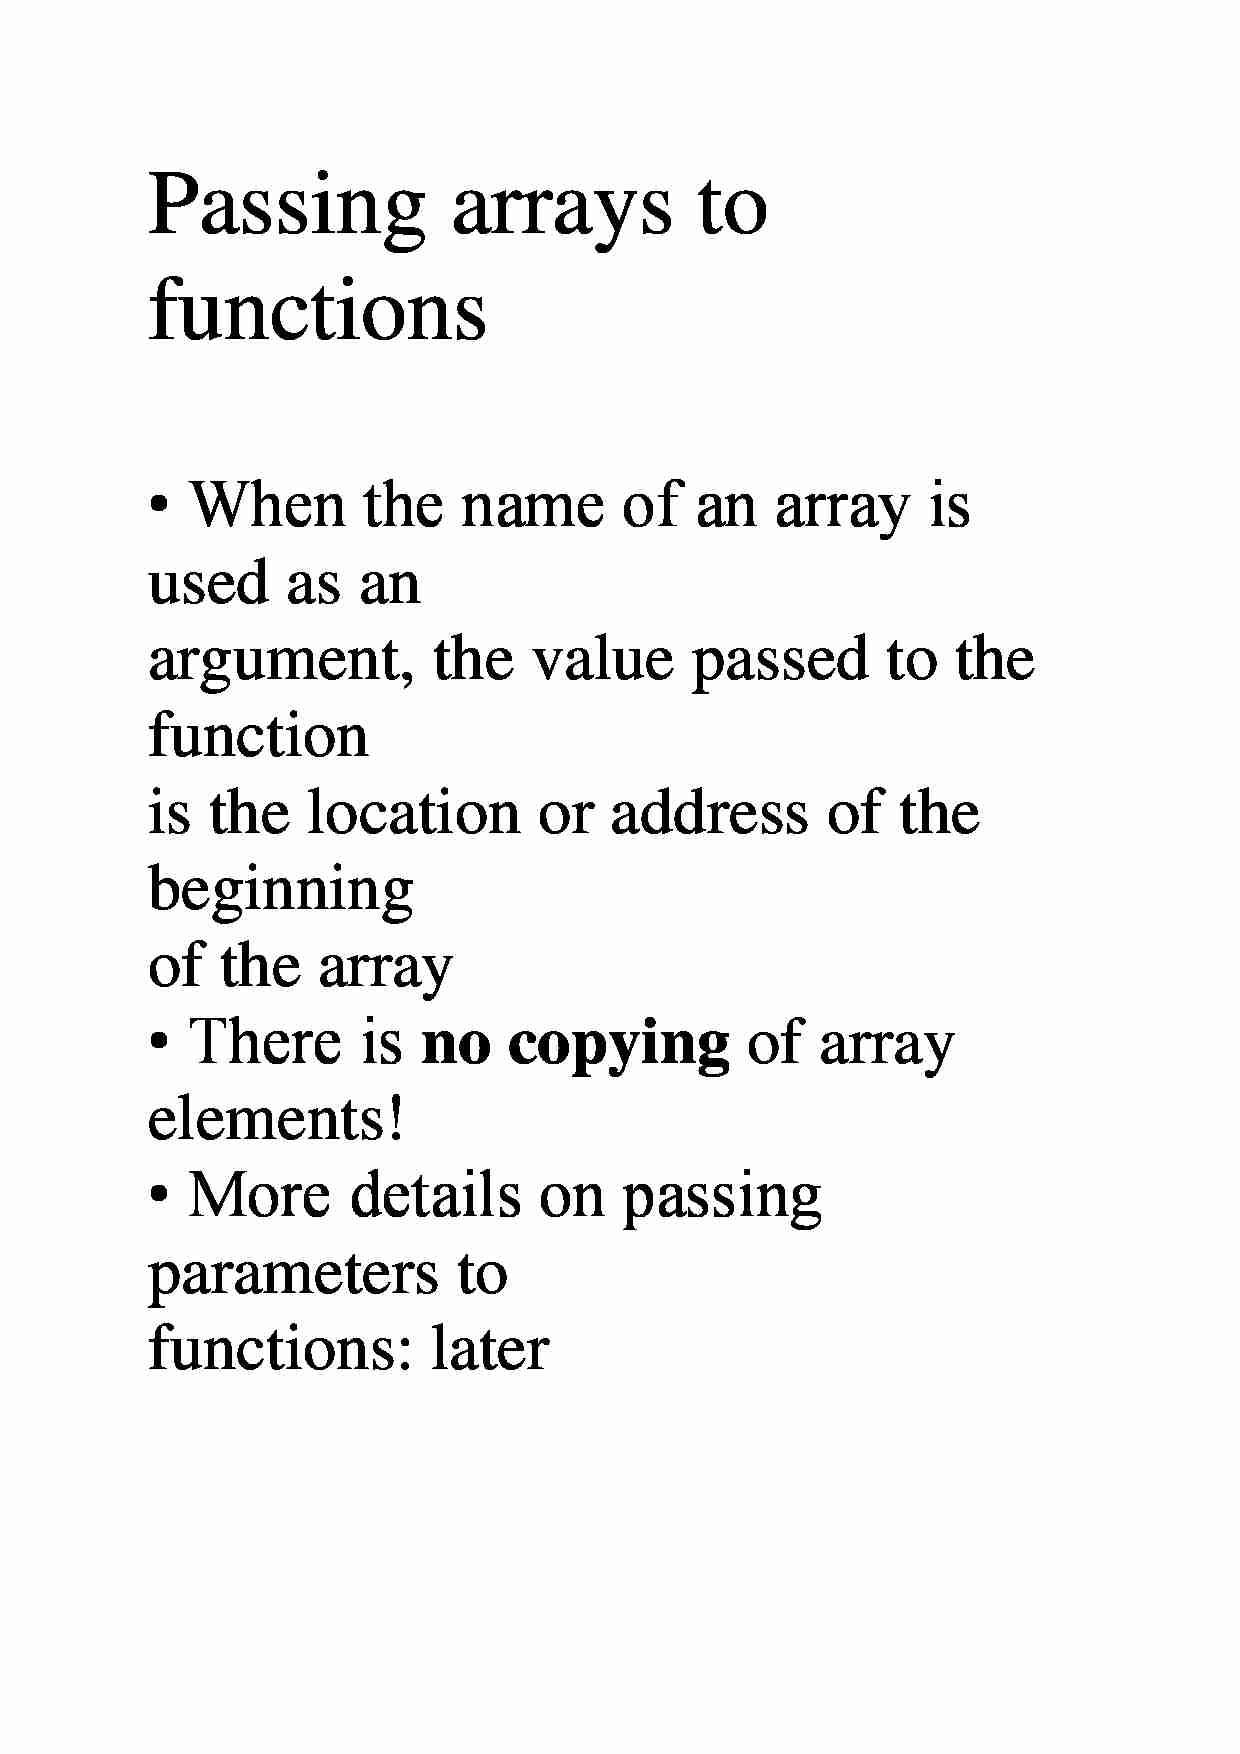 Passing arrays to functions - strona 1